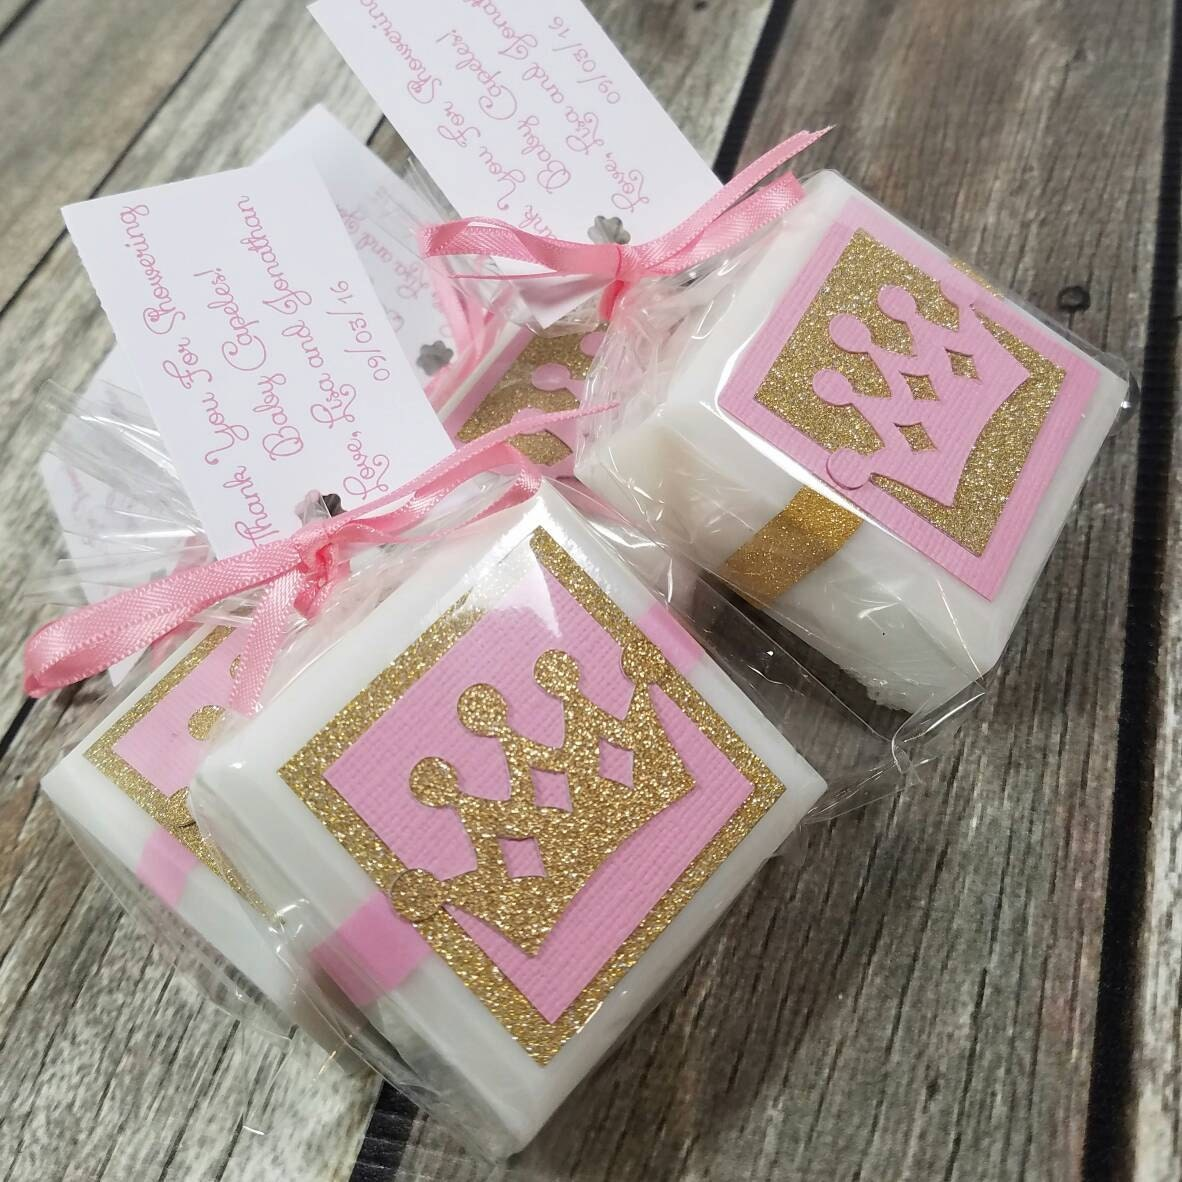 Princess Baby Shower Favors   Princess Birthday Party   Princess Party  Favors   Soap Favors   Crowns   Girls Birthday   Pink And Gold